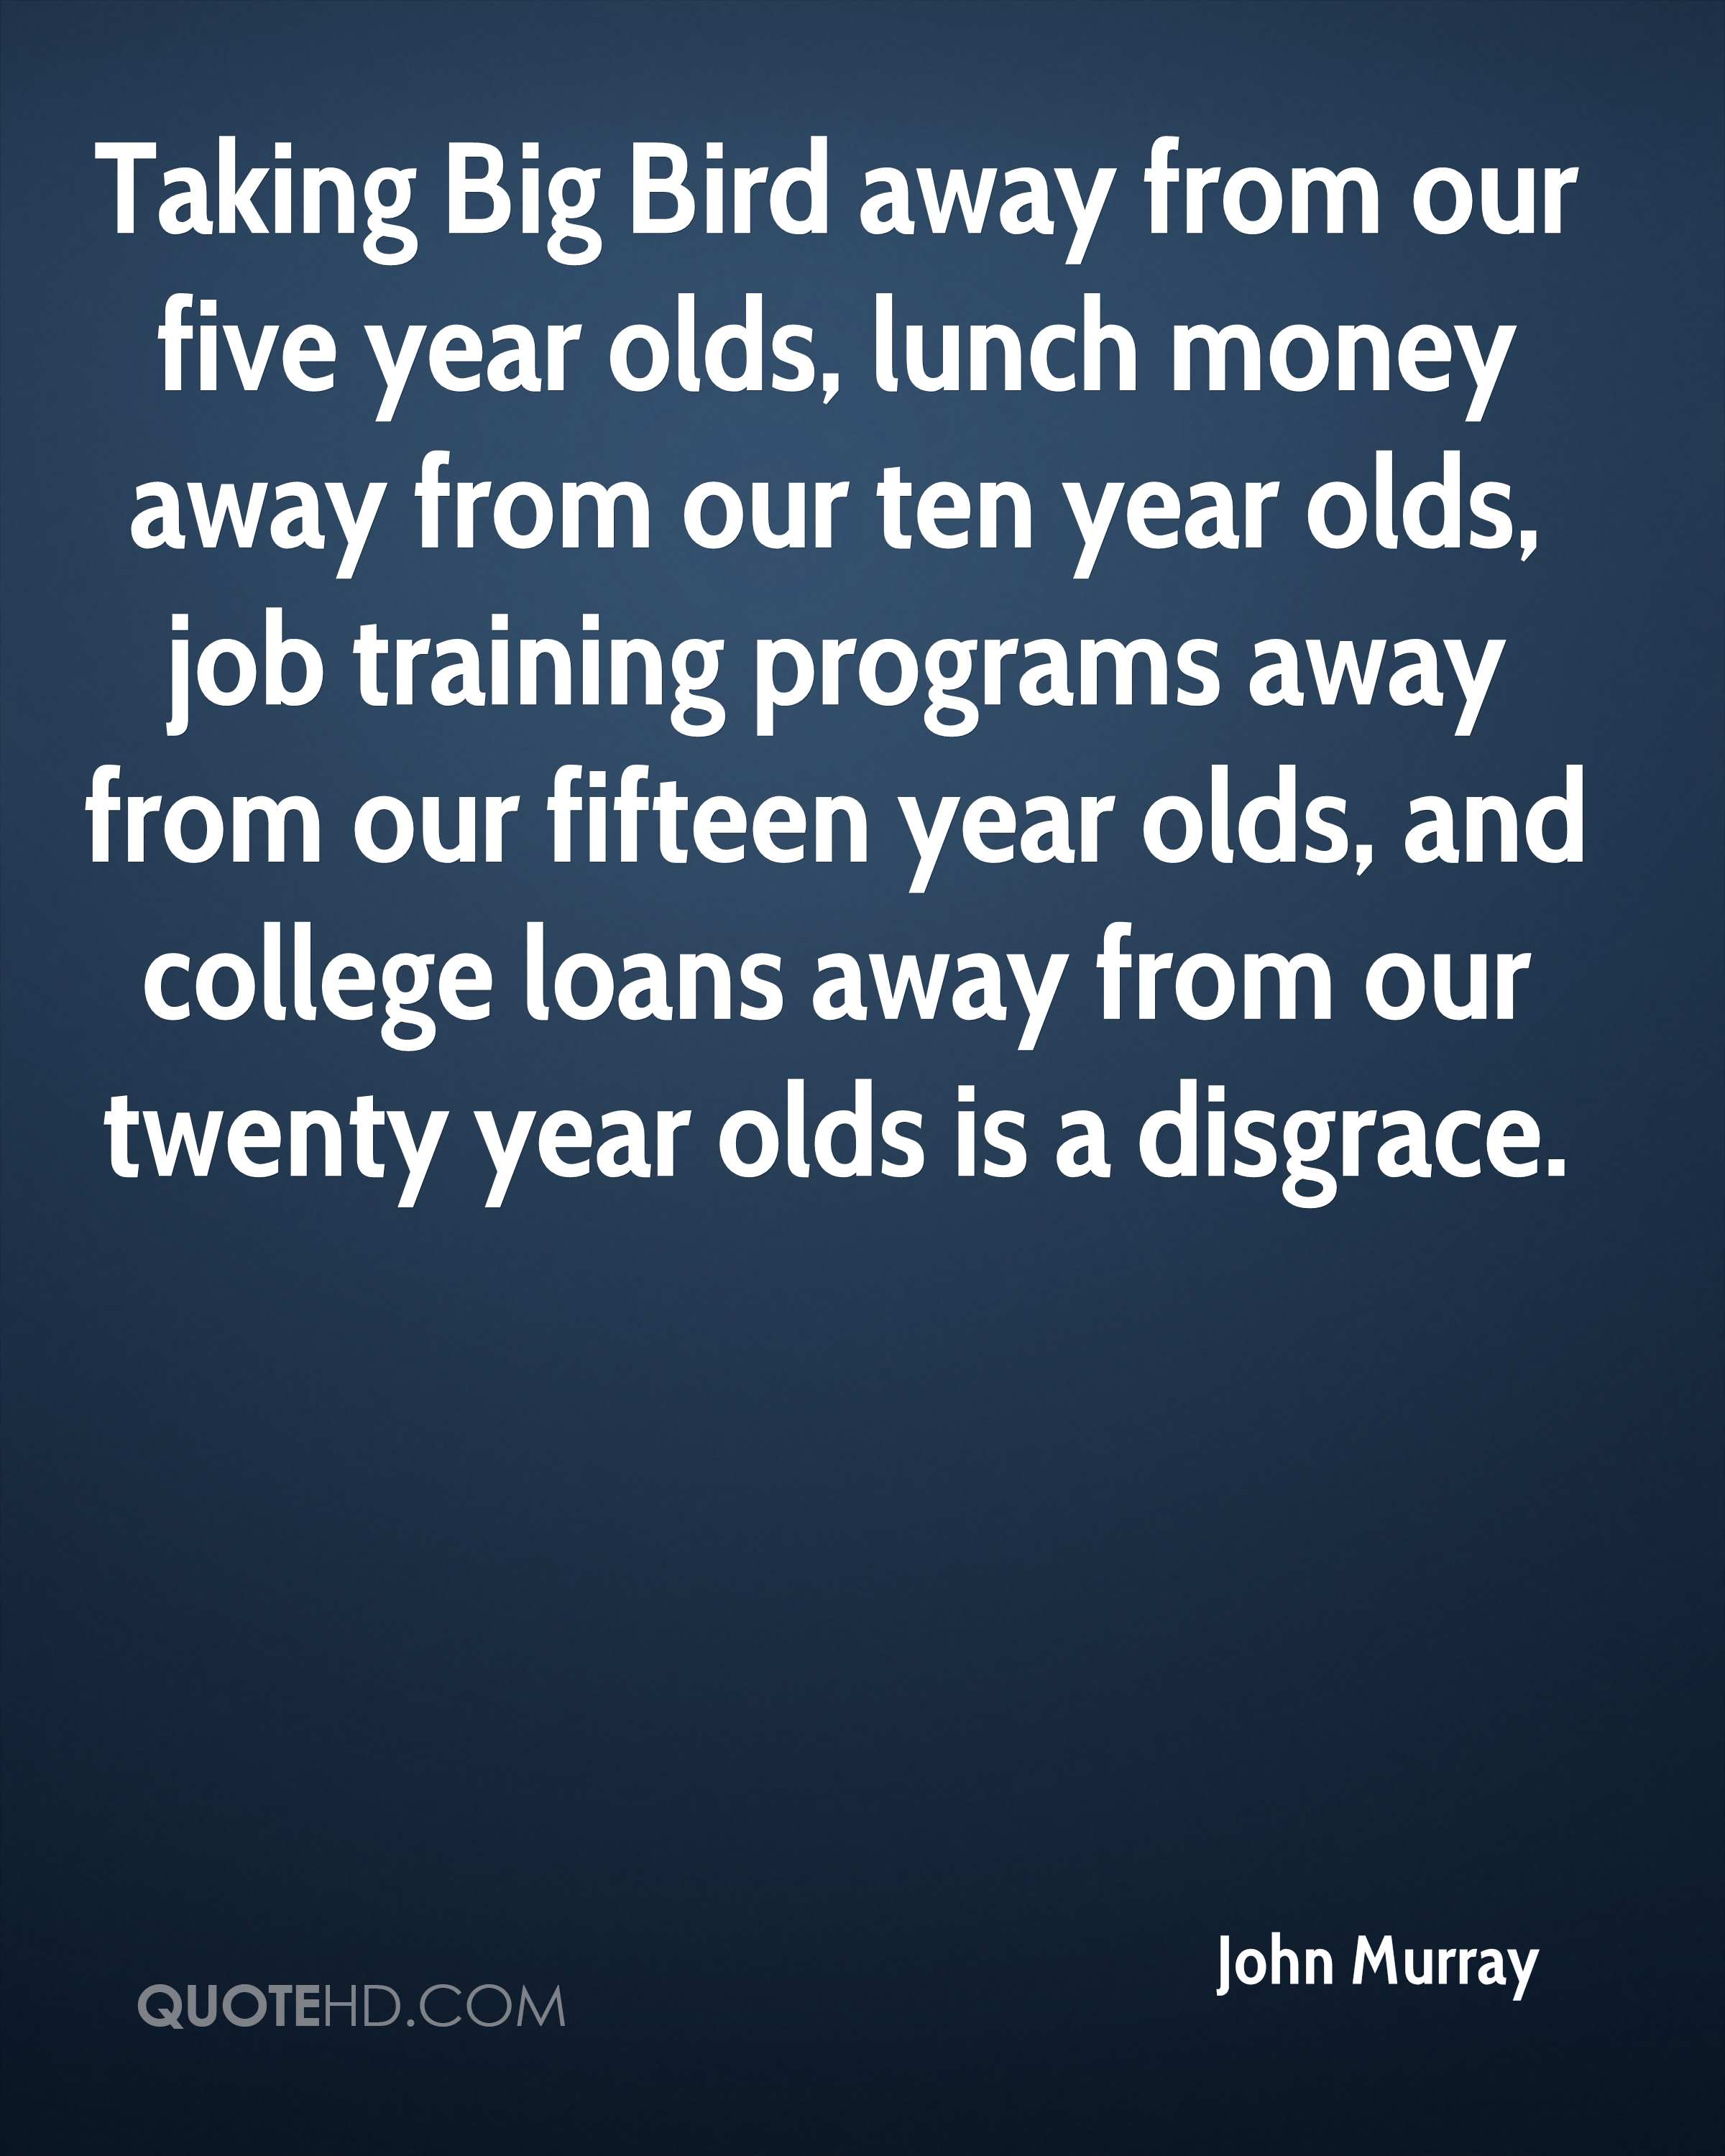 Taking Big Bird away from our five year olds, lunch money away from our ten year olds, job training programs away from our fifteen year olds, and college loans away from our twenty year olds is a disgrace.